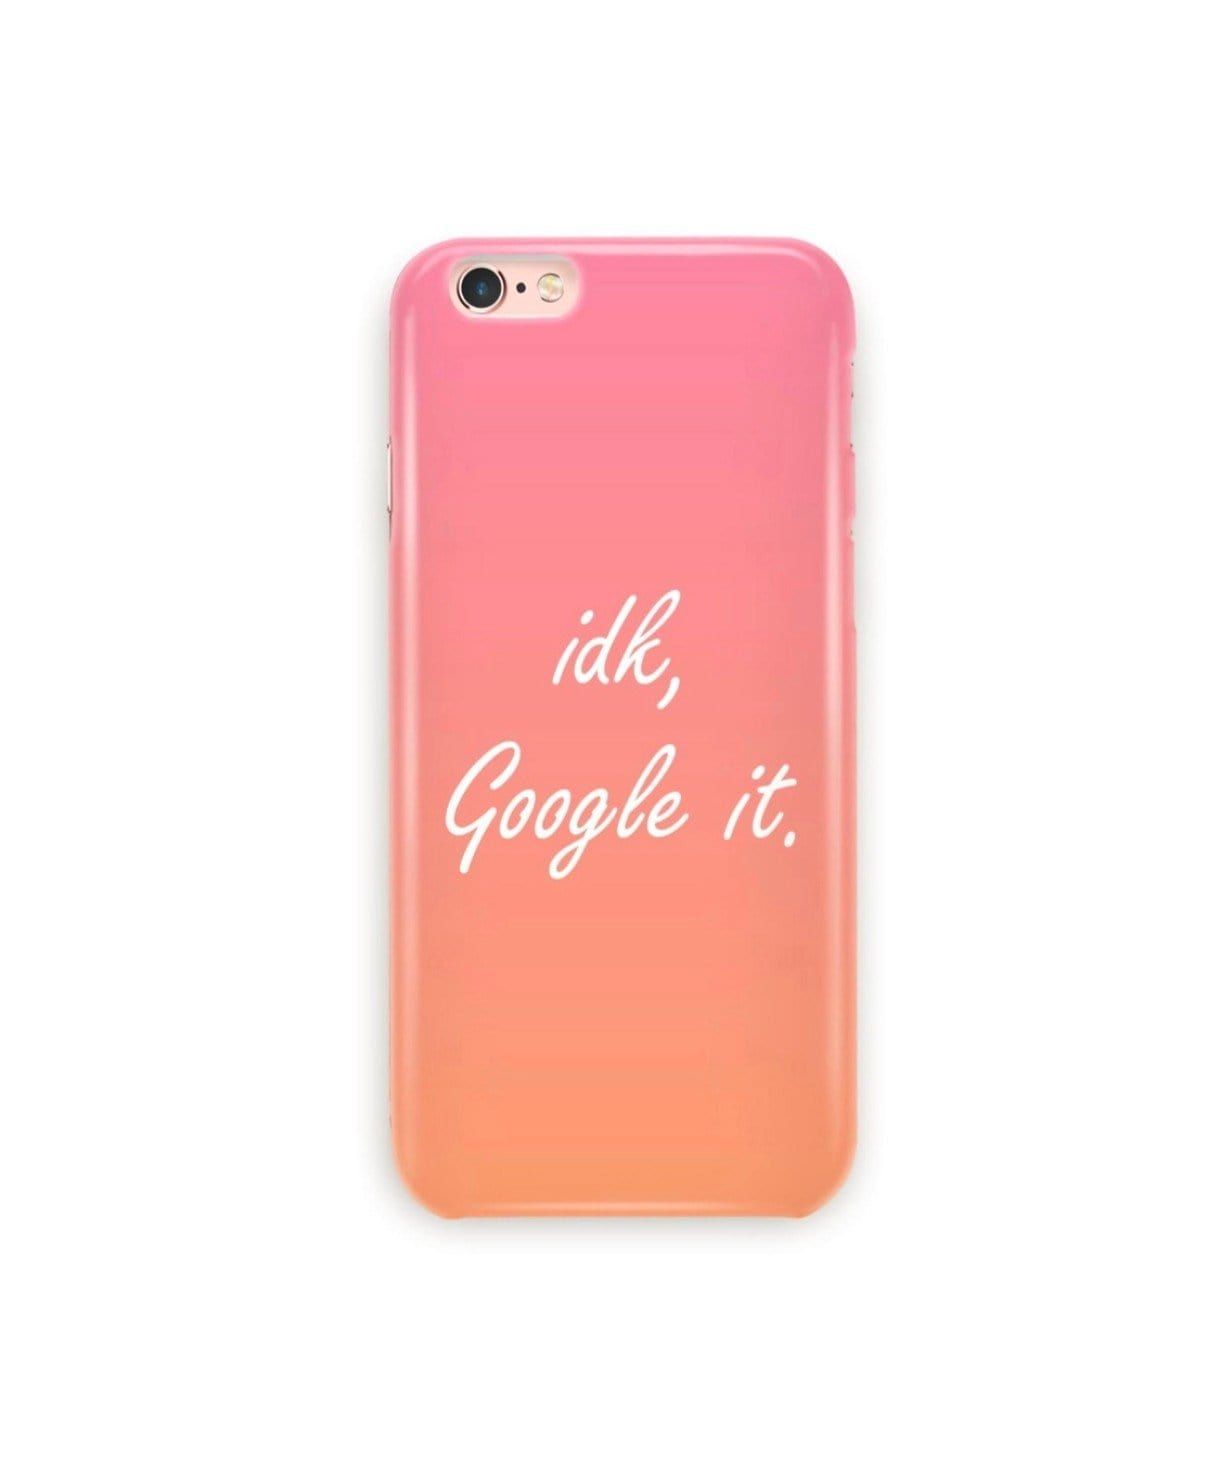 Google It IPhone Cover (Personalisation Available) - Uptownie